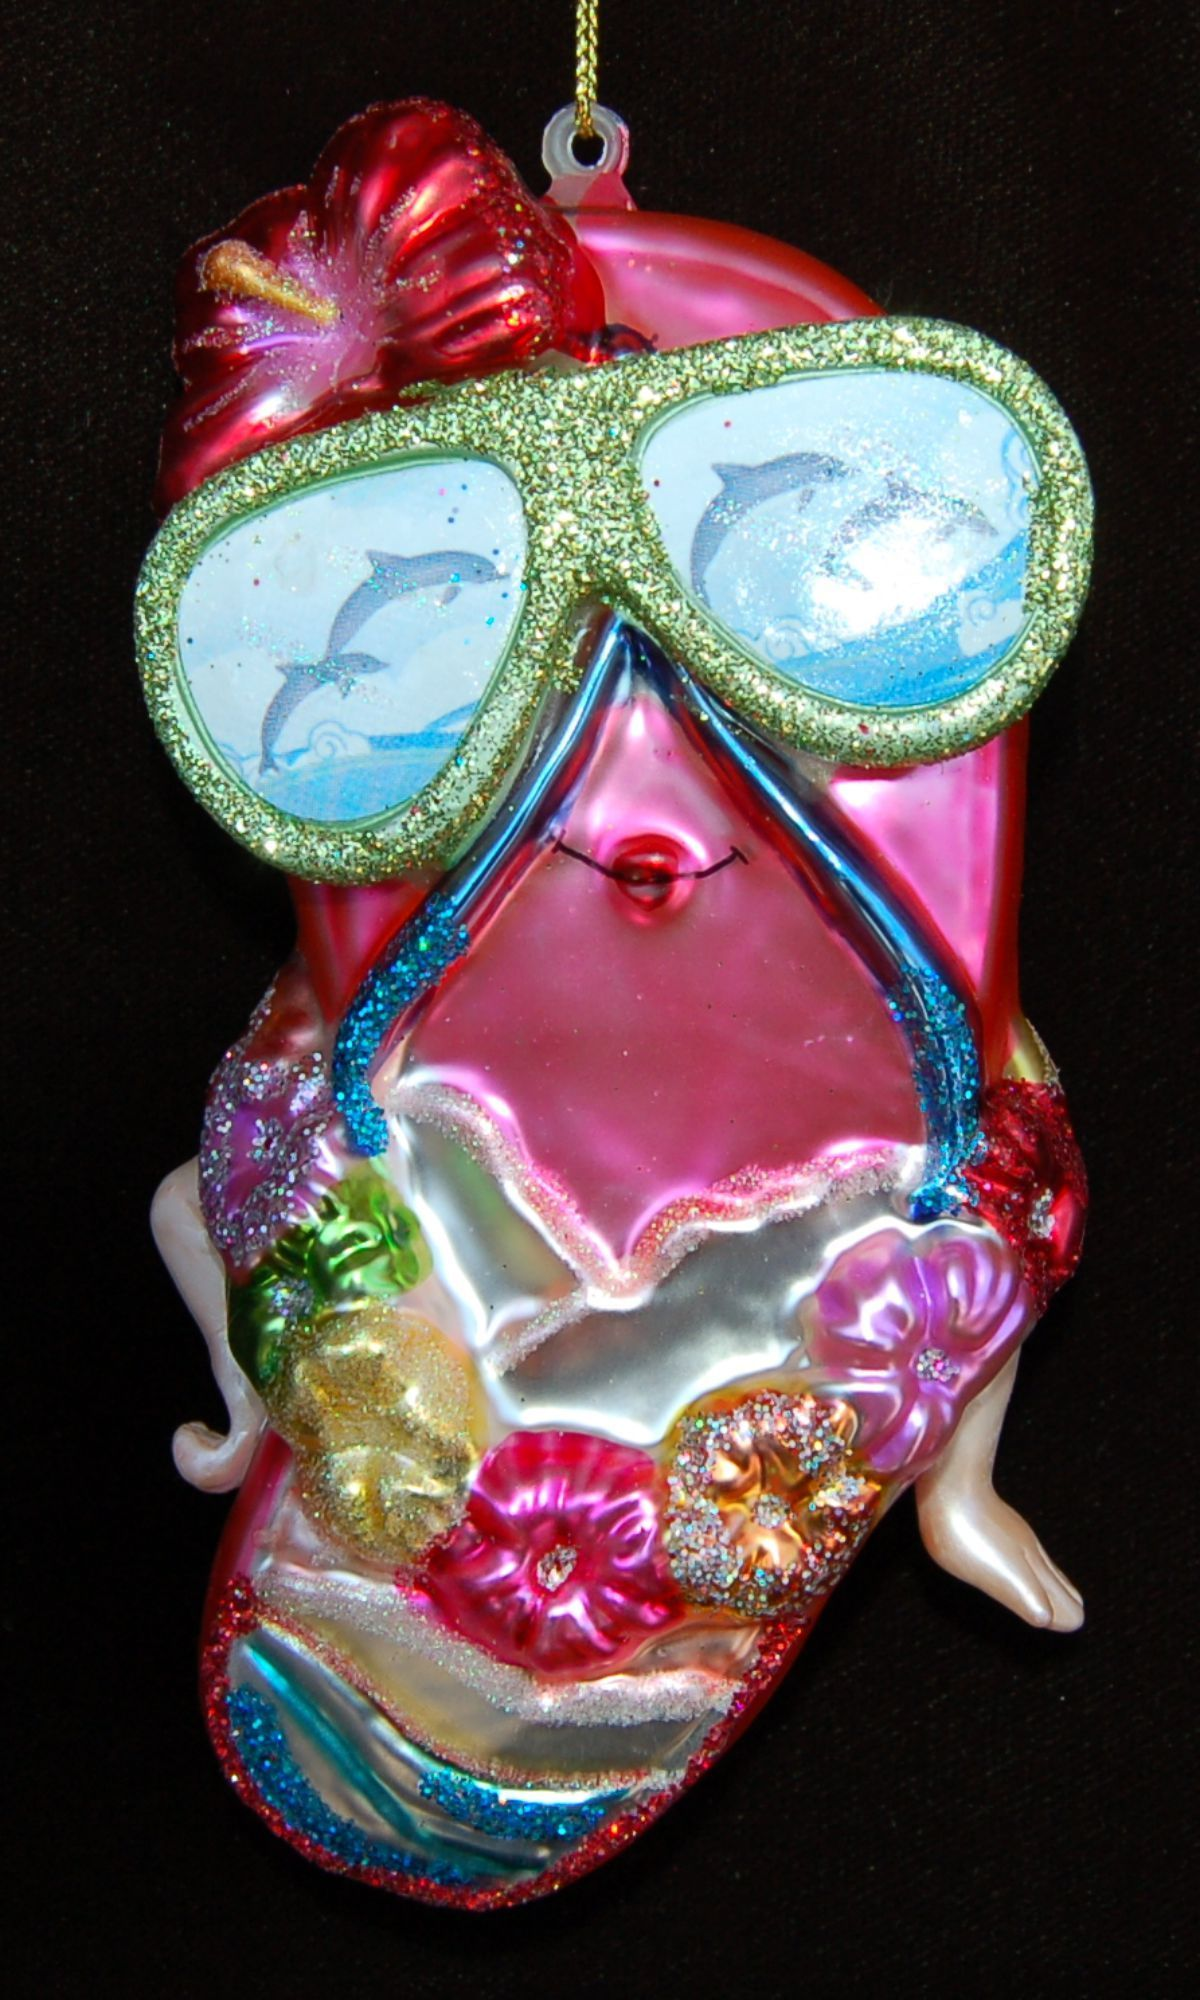 Flip Flop Kind of Girl Glass Christmas Ornament Personalized by Russell Rhodes